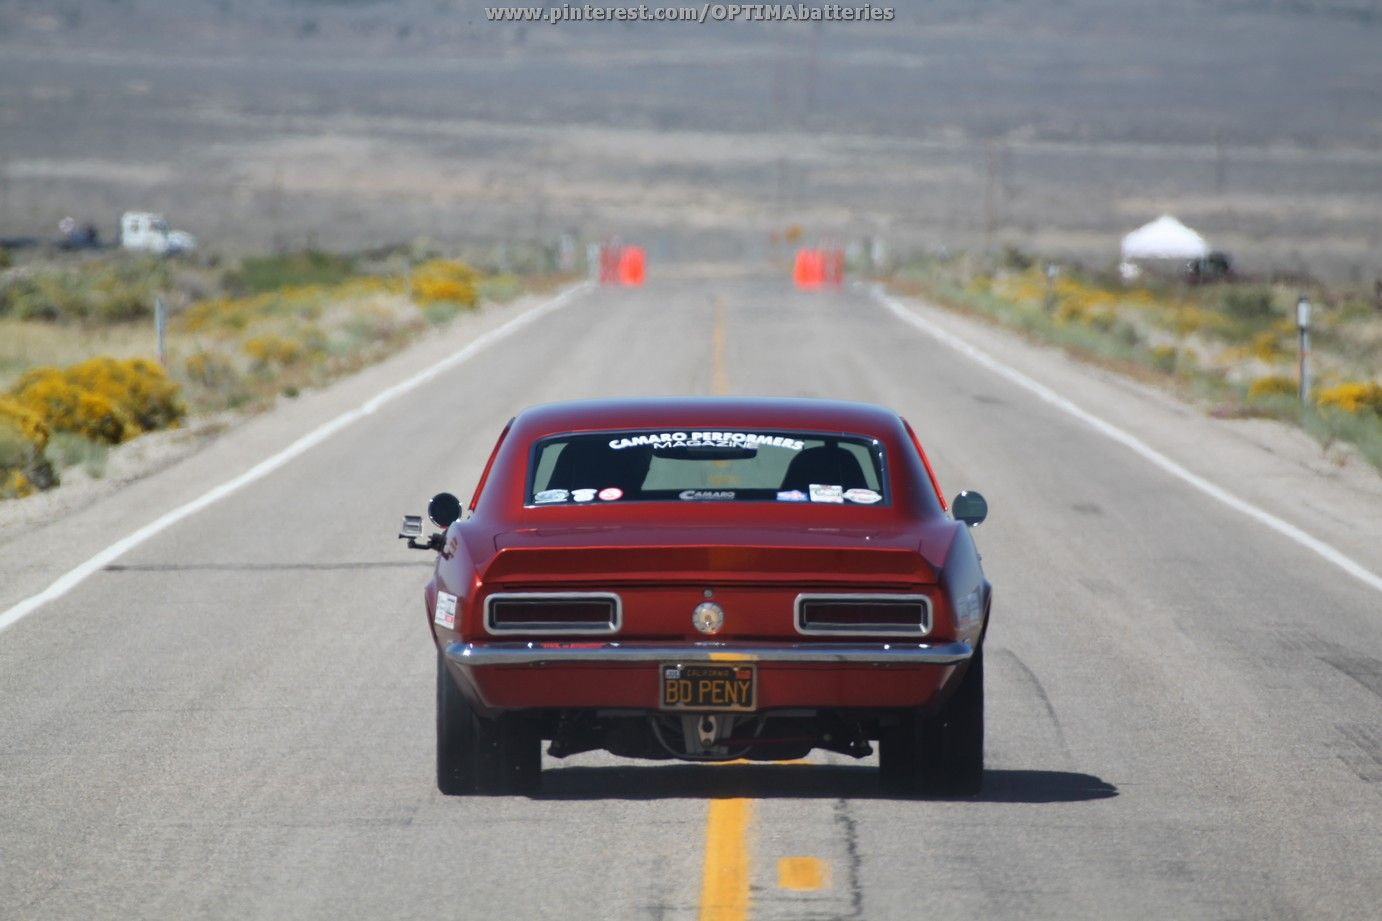 Steven Rupp's Bad Penny Camaro makes a run in the half-mile shootout at the 2012 Silver State Classic Challenge